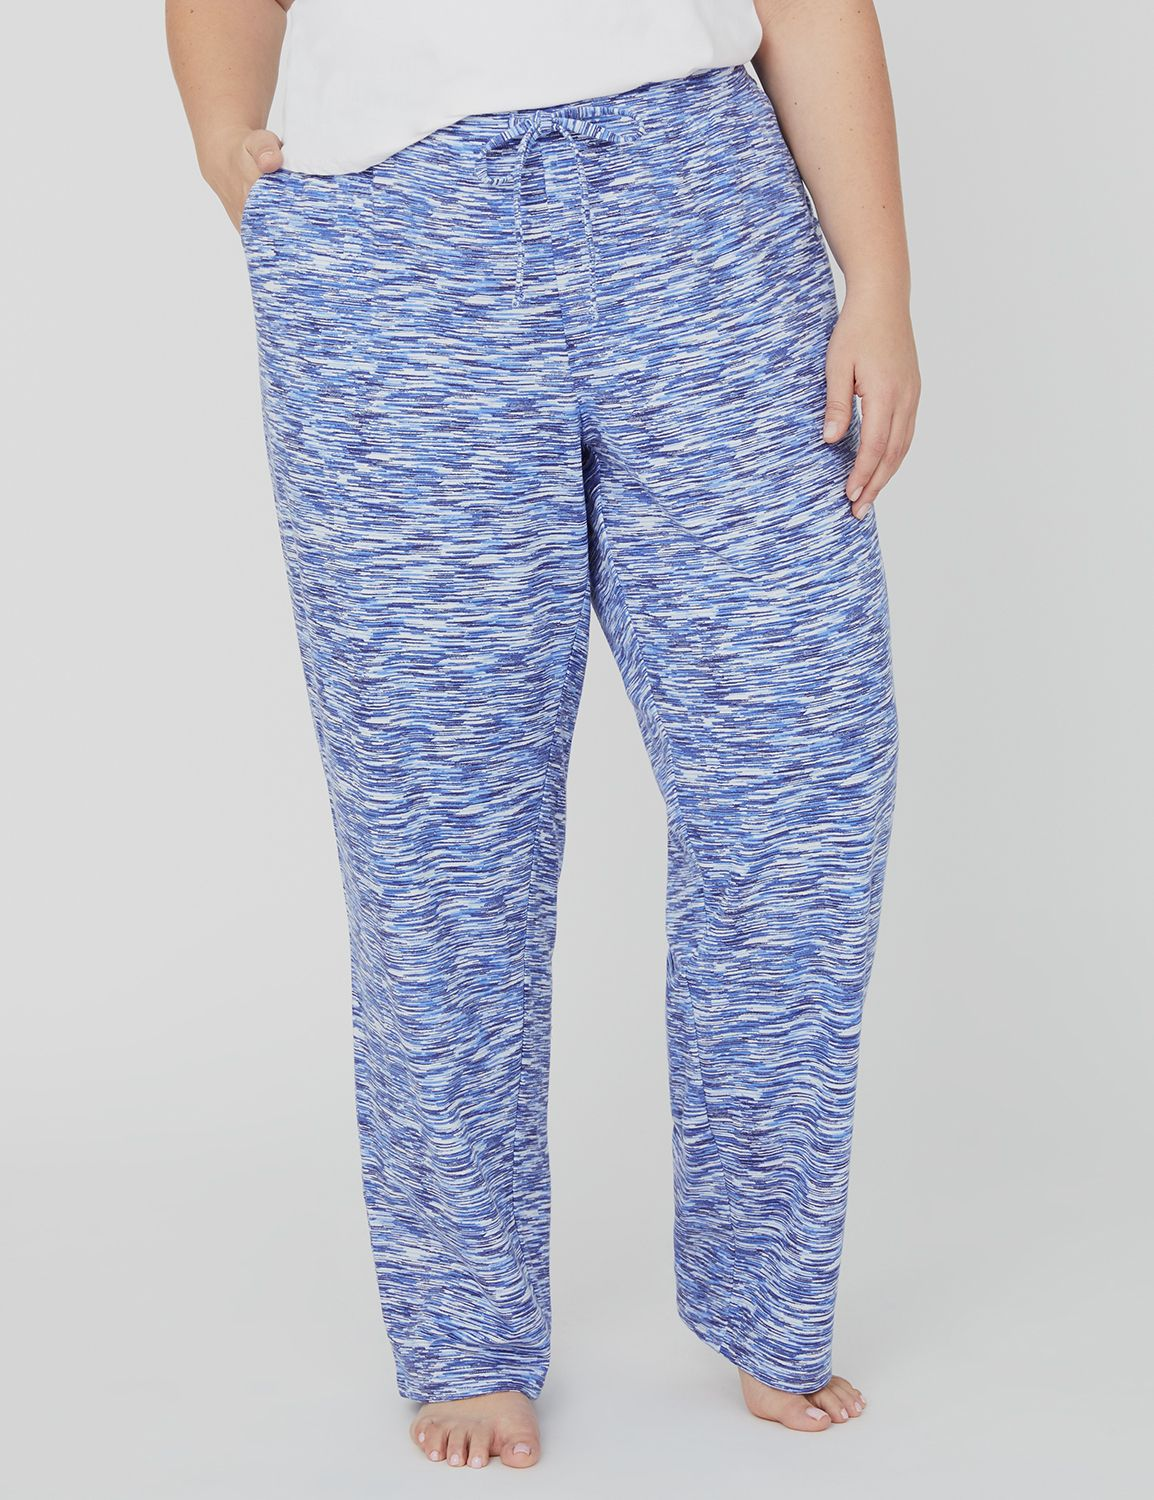 Spacedye Terry Sleep Pant 1088019 Cold/Temp A/O Printed Space MP-300096250